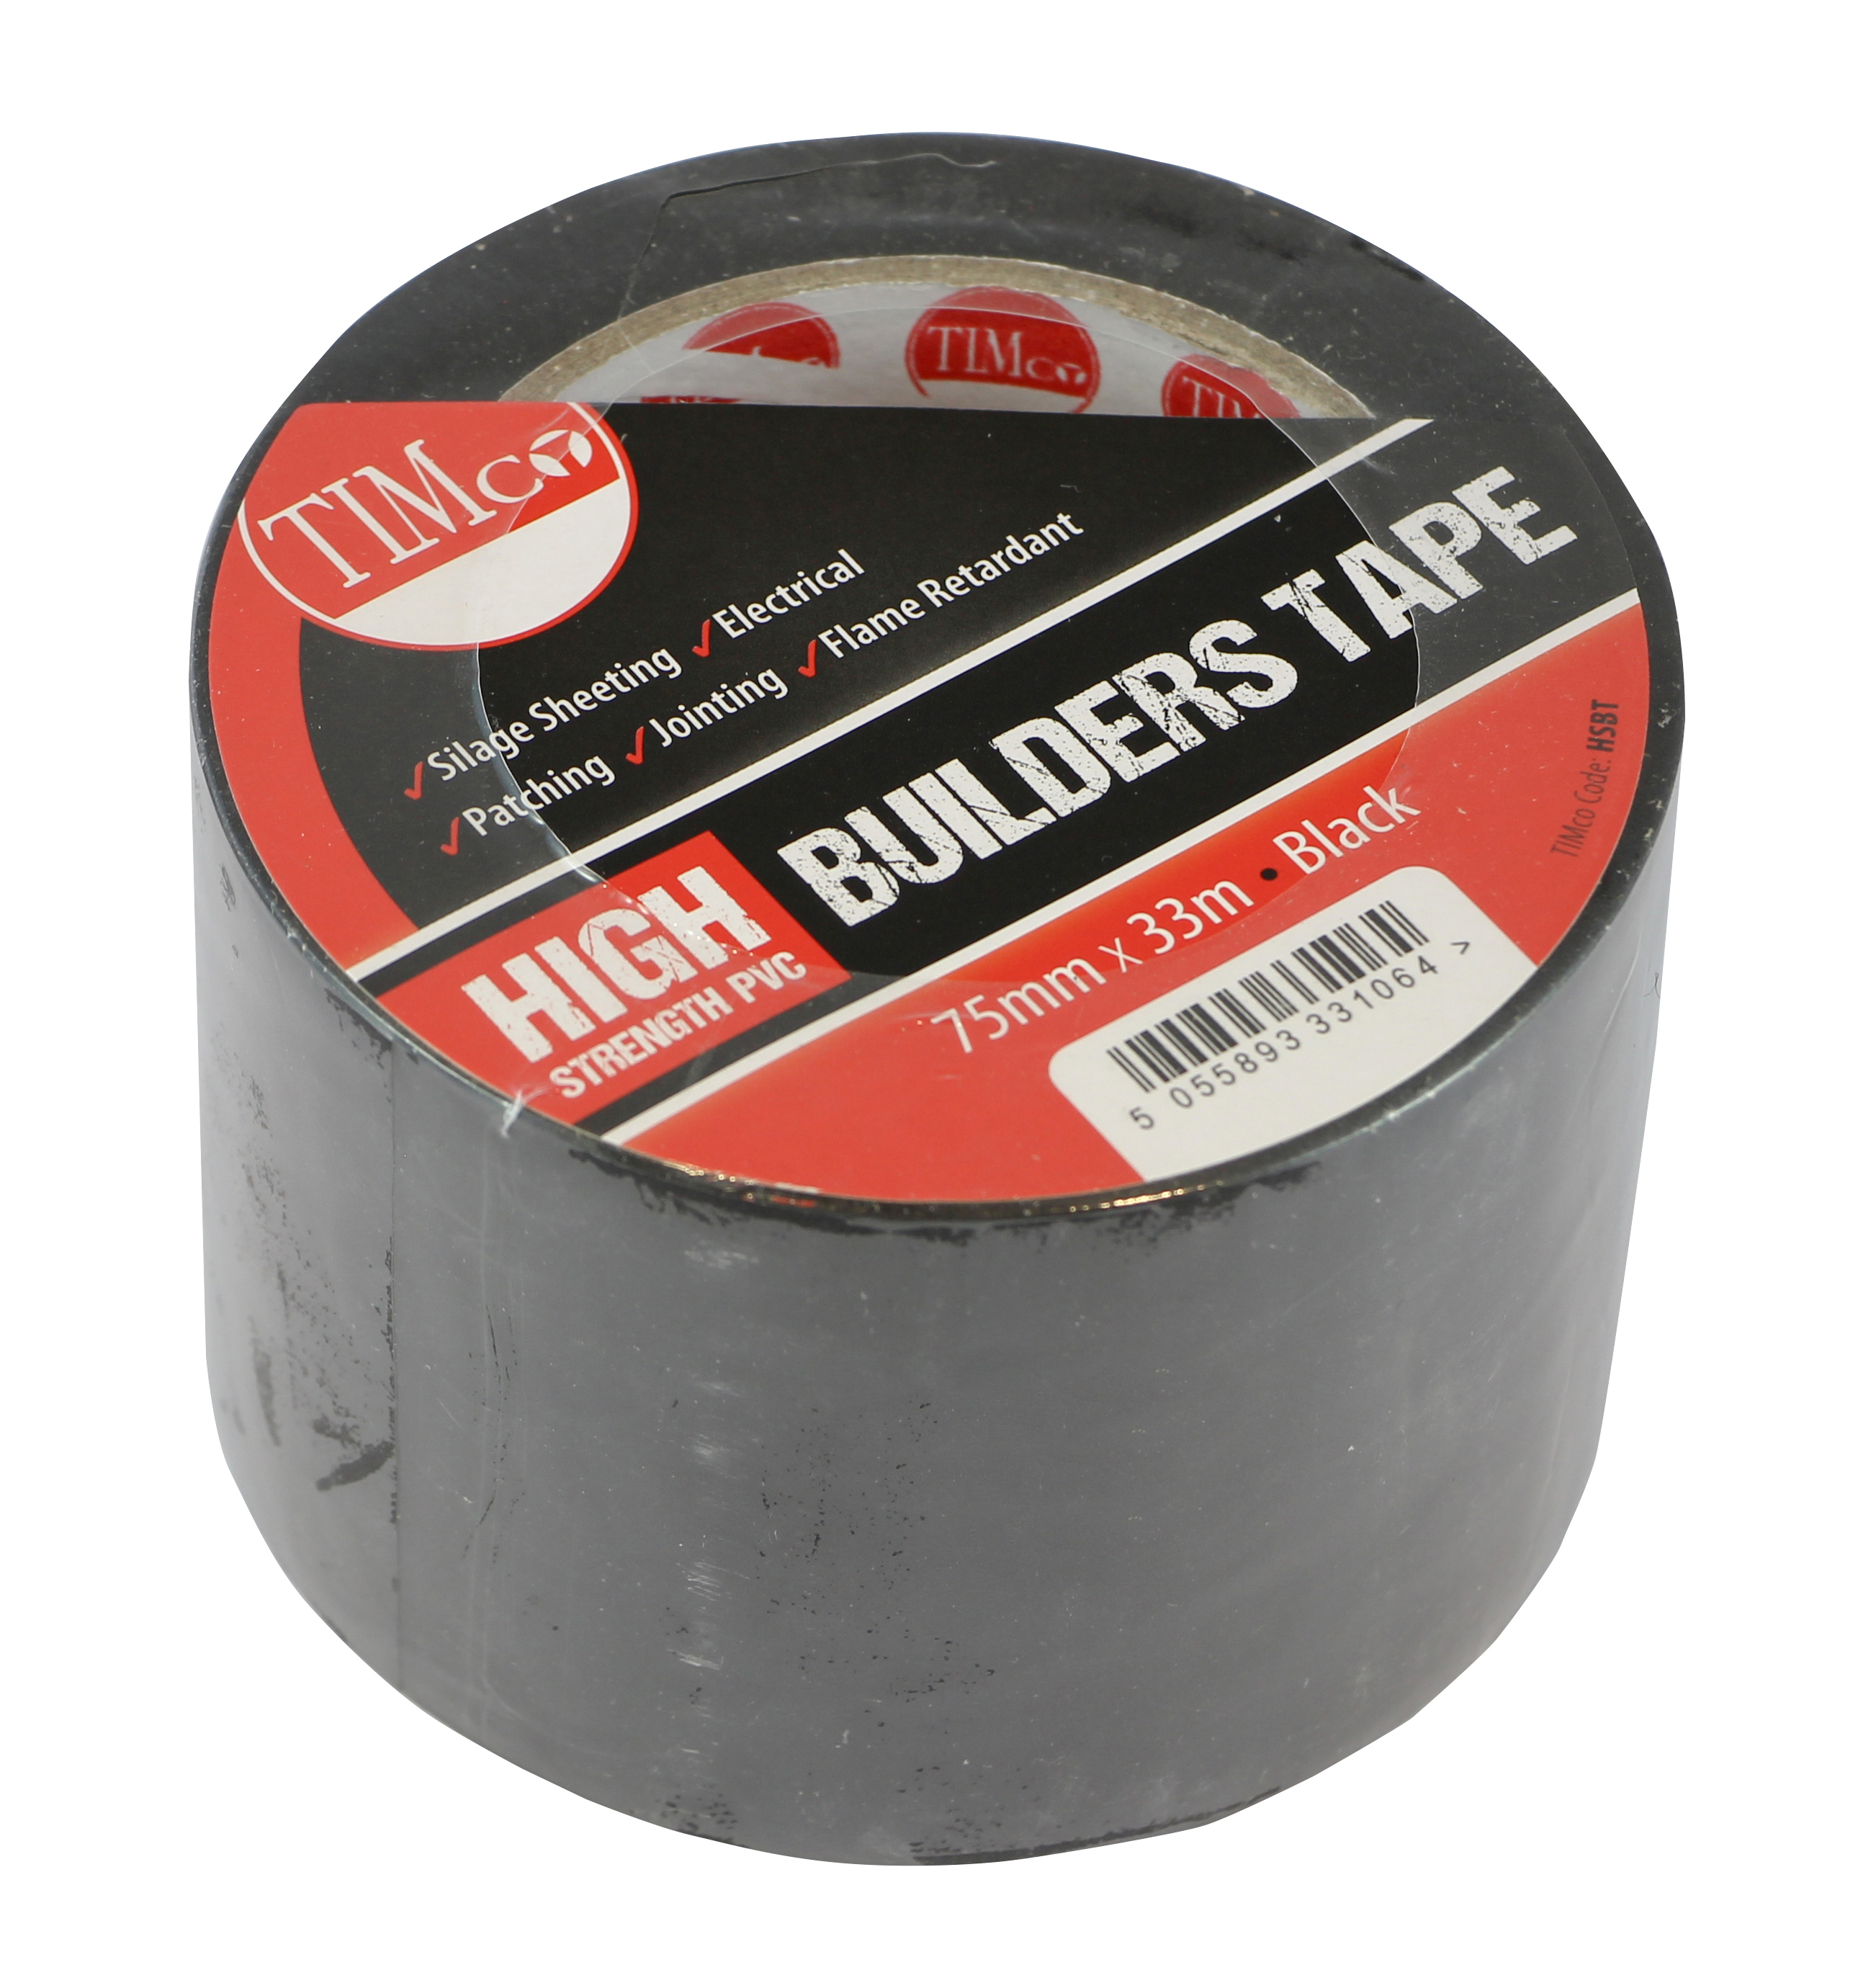 TIMco 33m x 75mm High Strength PVC Builders Tape